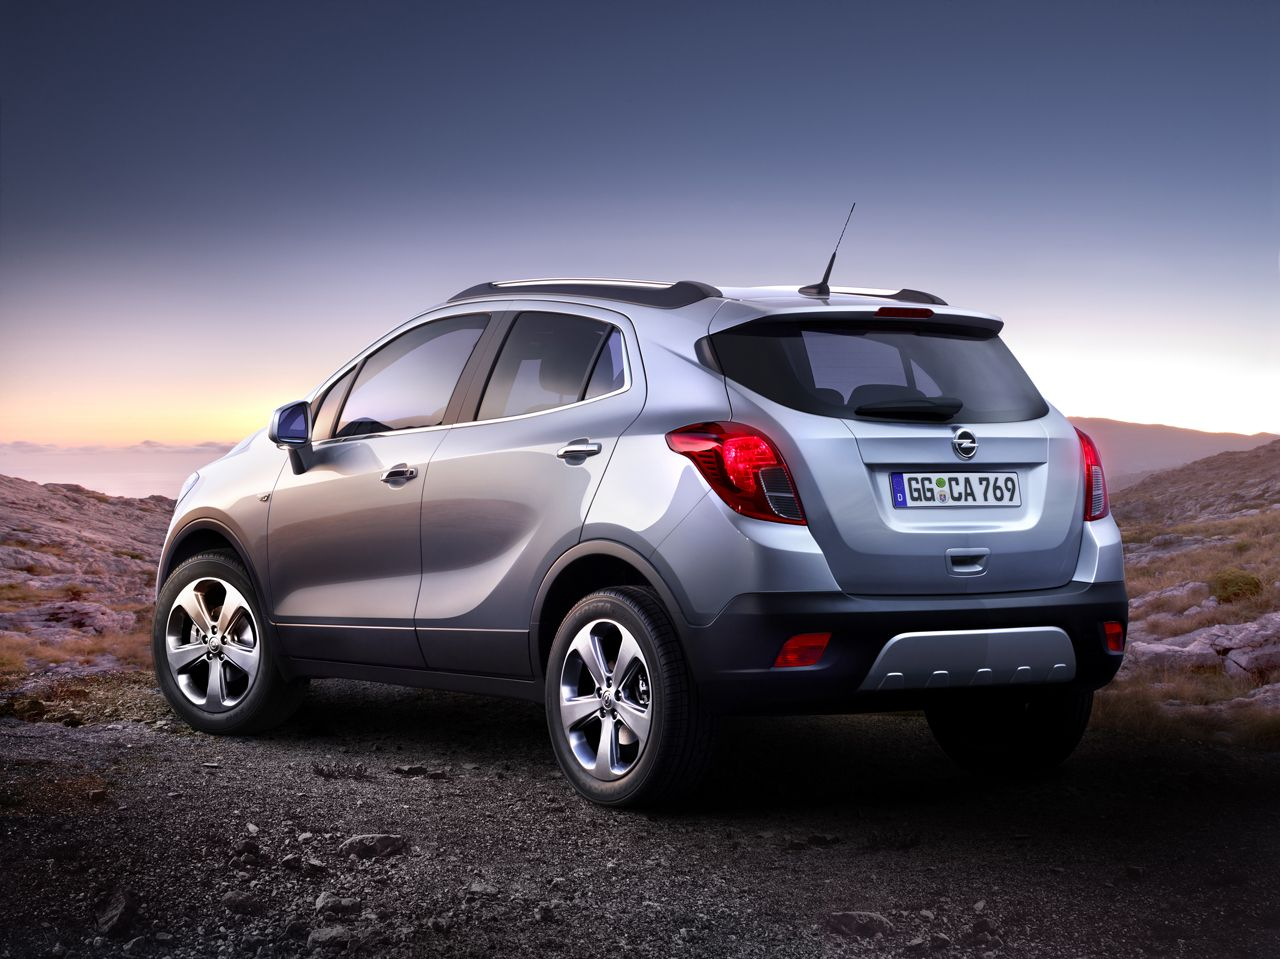 Car Pictures And Photo Galleries Autoblog Opel Mokka Mokka Auto S